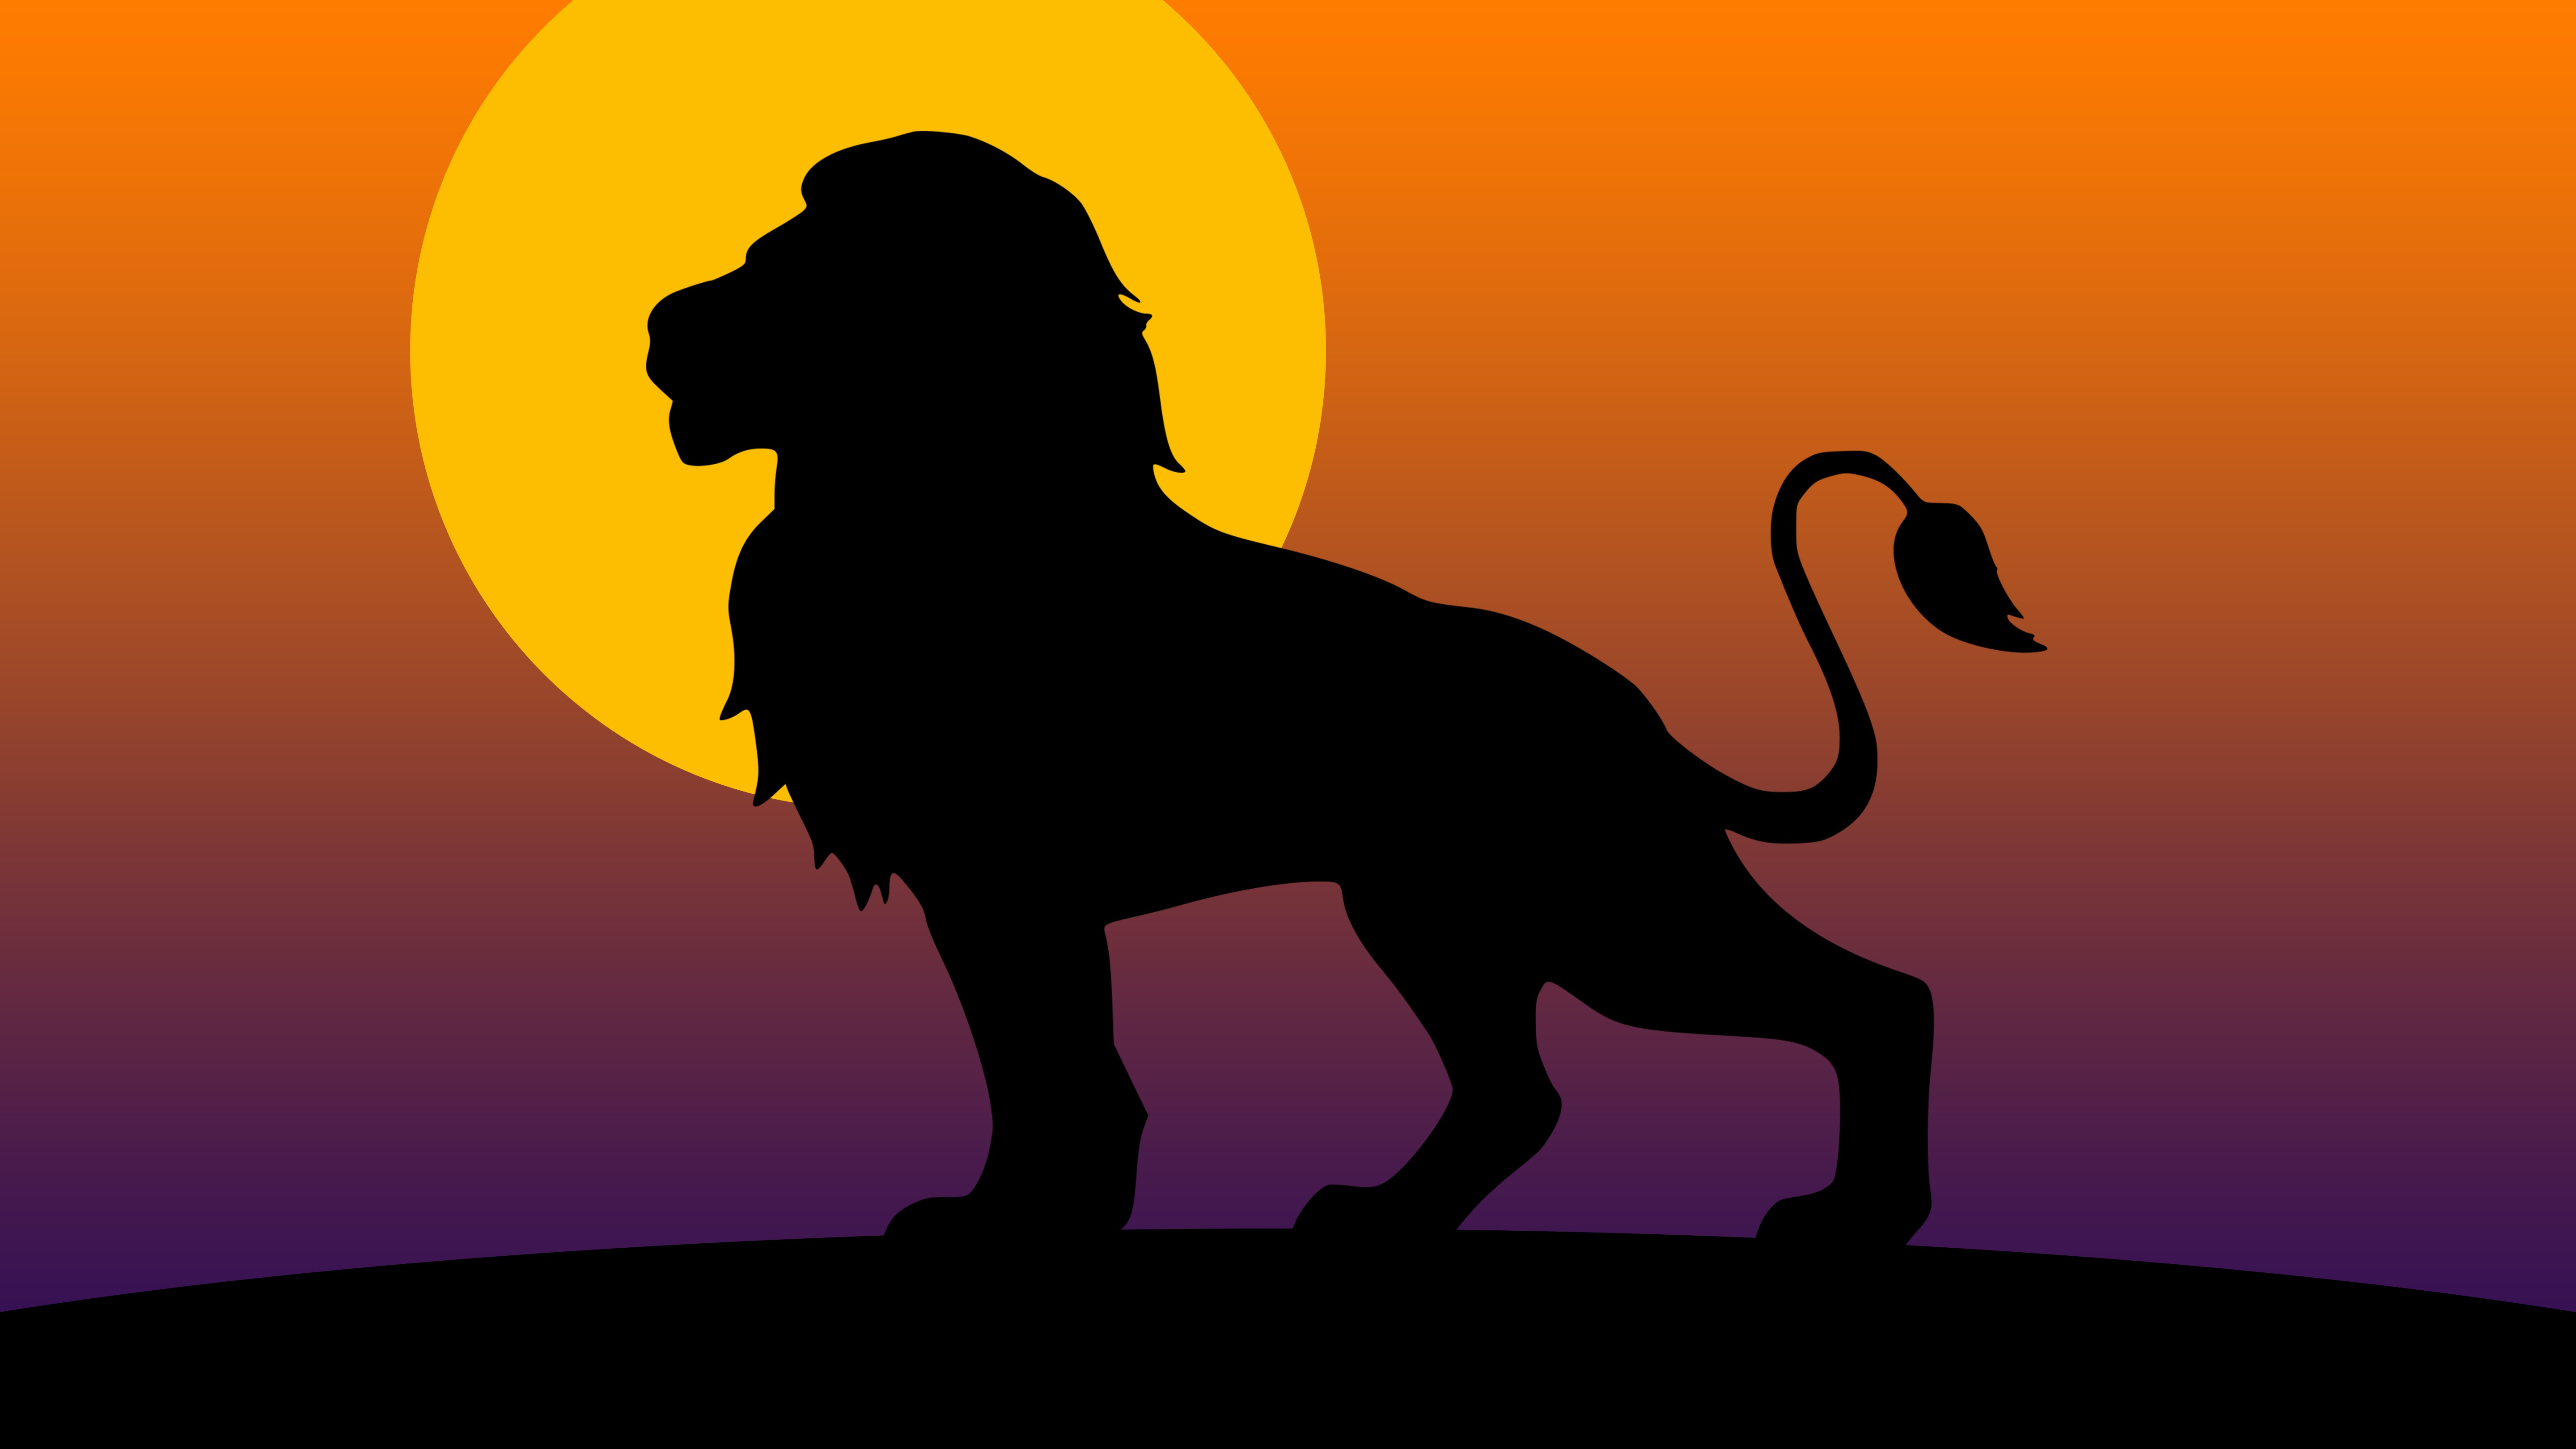 Lion Silhouette In The Sunset 5k Retina Ultra Hd Wallpaper Background Image 5760x3240 Id 1033615 Wallpaper Abyss Lion crown with sunglasses silhouette svg cut file. wallpaper abyss alpha coders